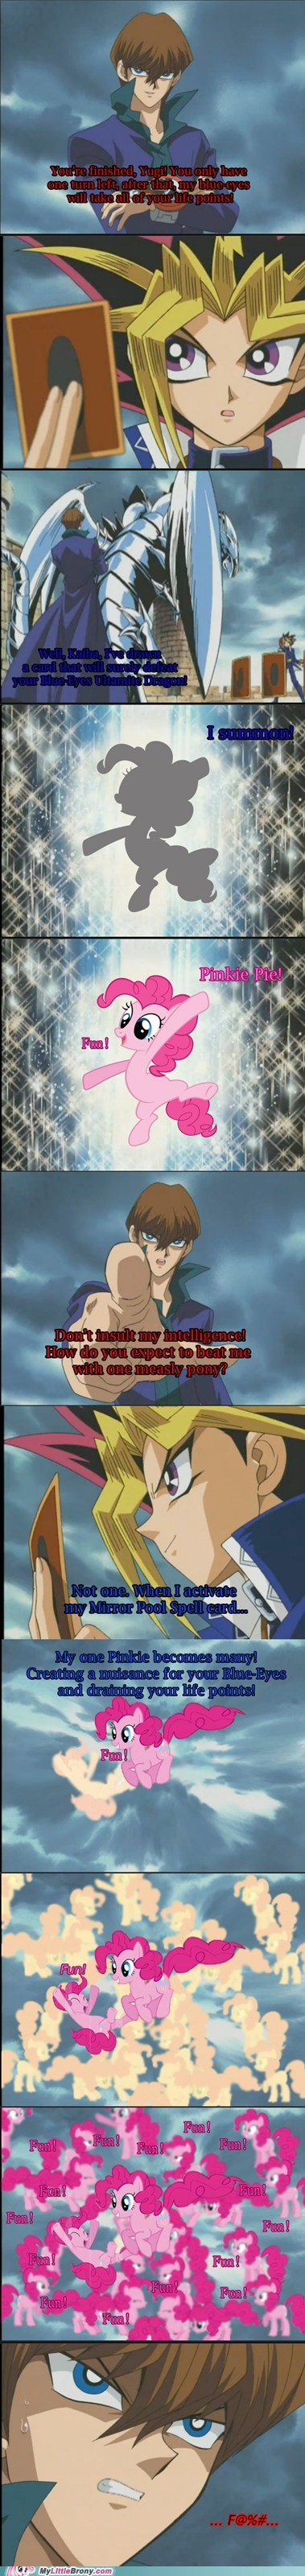 Yu-Gi-Oh! mirror pool comics pinkie pie - 6918637568